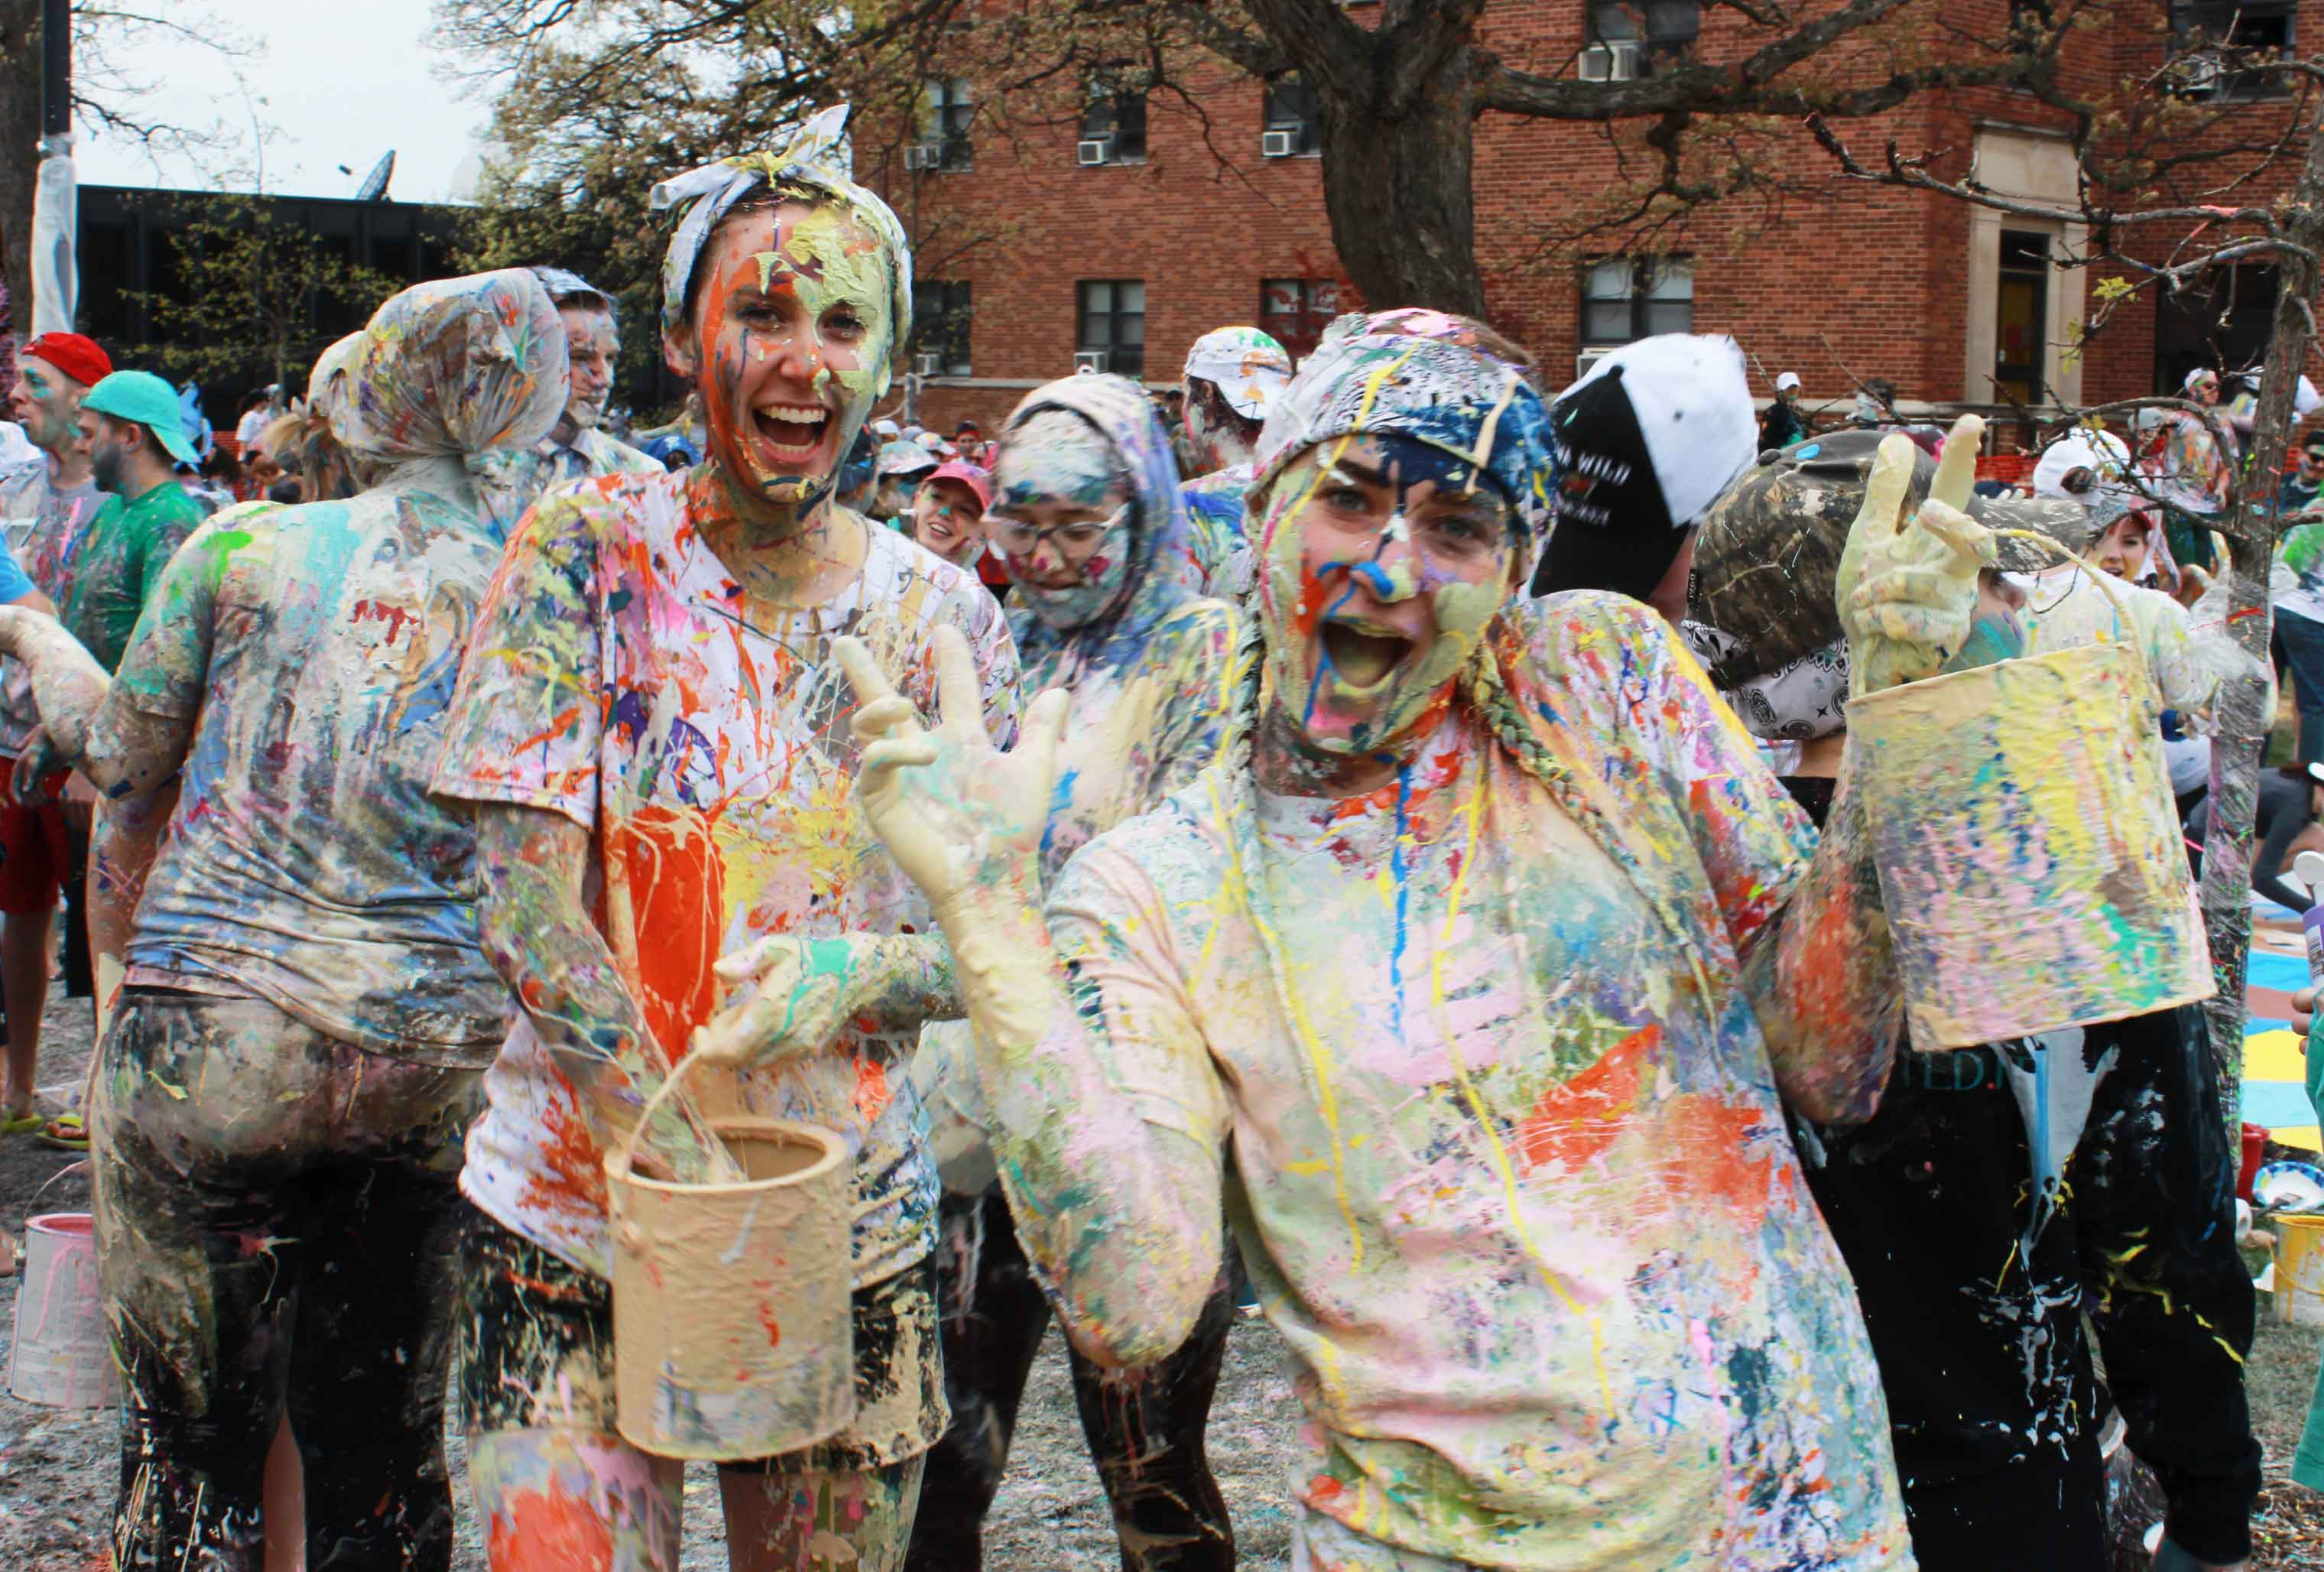 Students With Paint Buckets During the Paint Fight